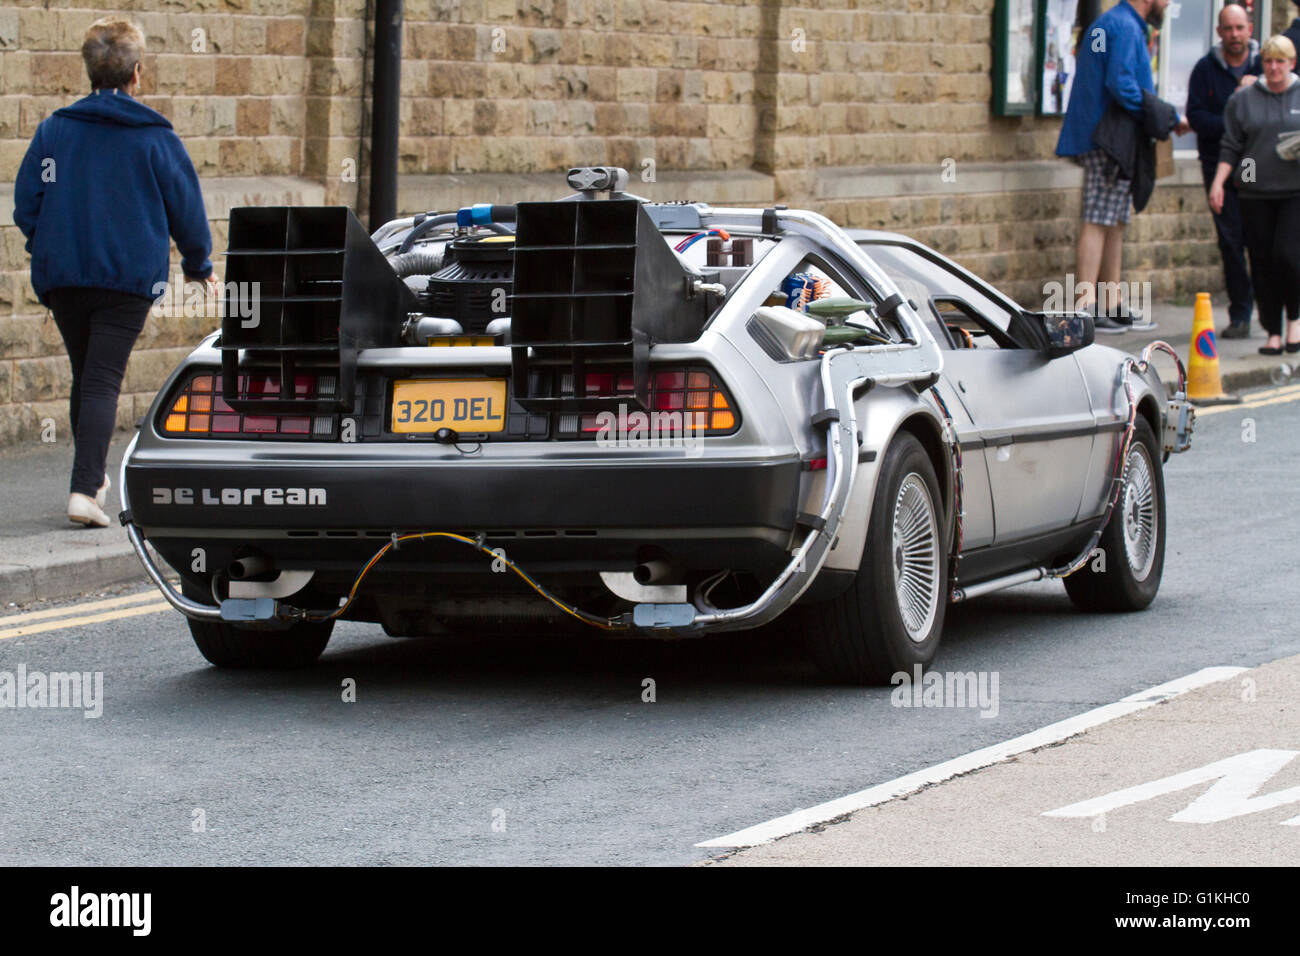 the delorean dmc 12 sports car haworth yorkshire uk stock photo 104307616 alamy. Black Bedroom Furniture Sets. Home Design Ideas